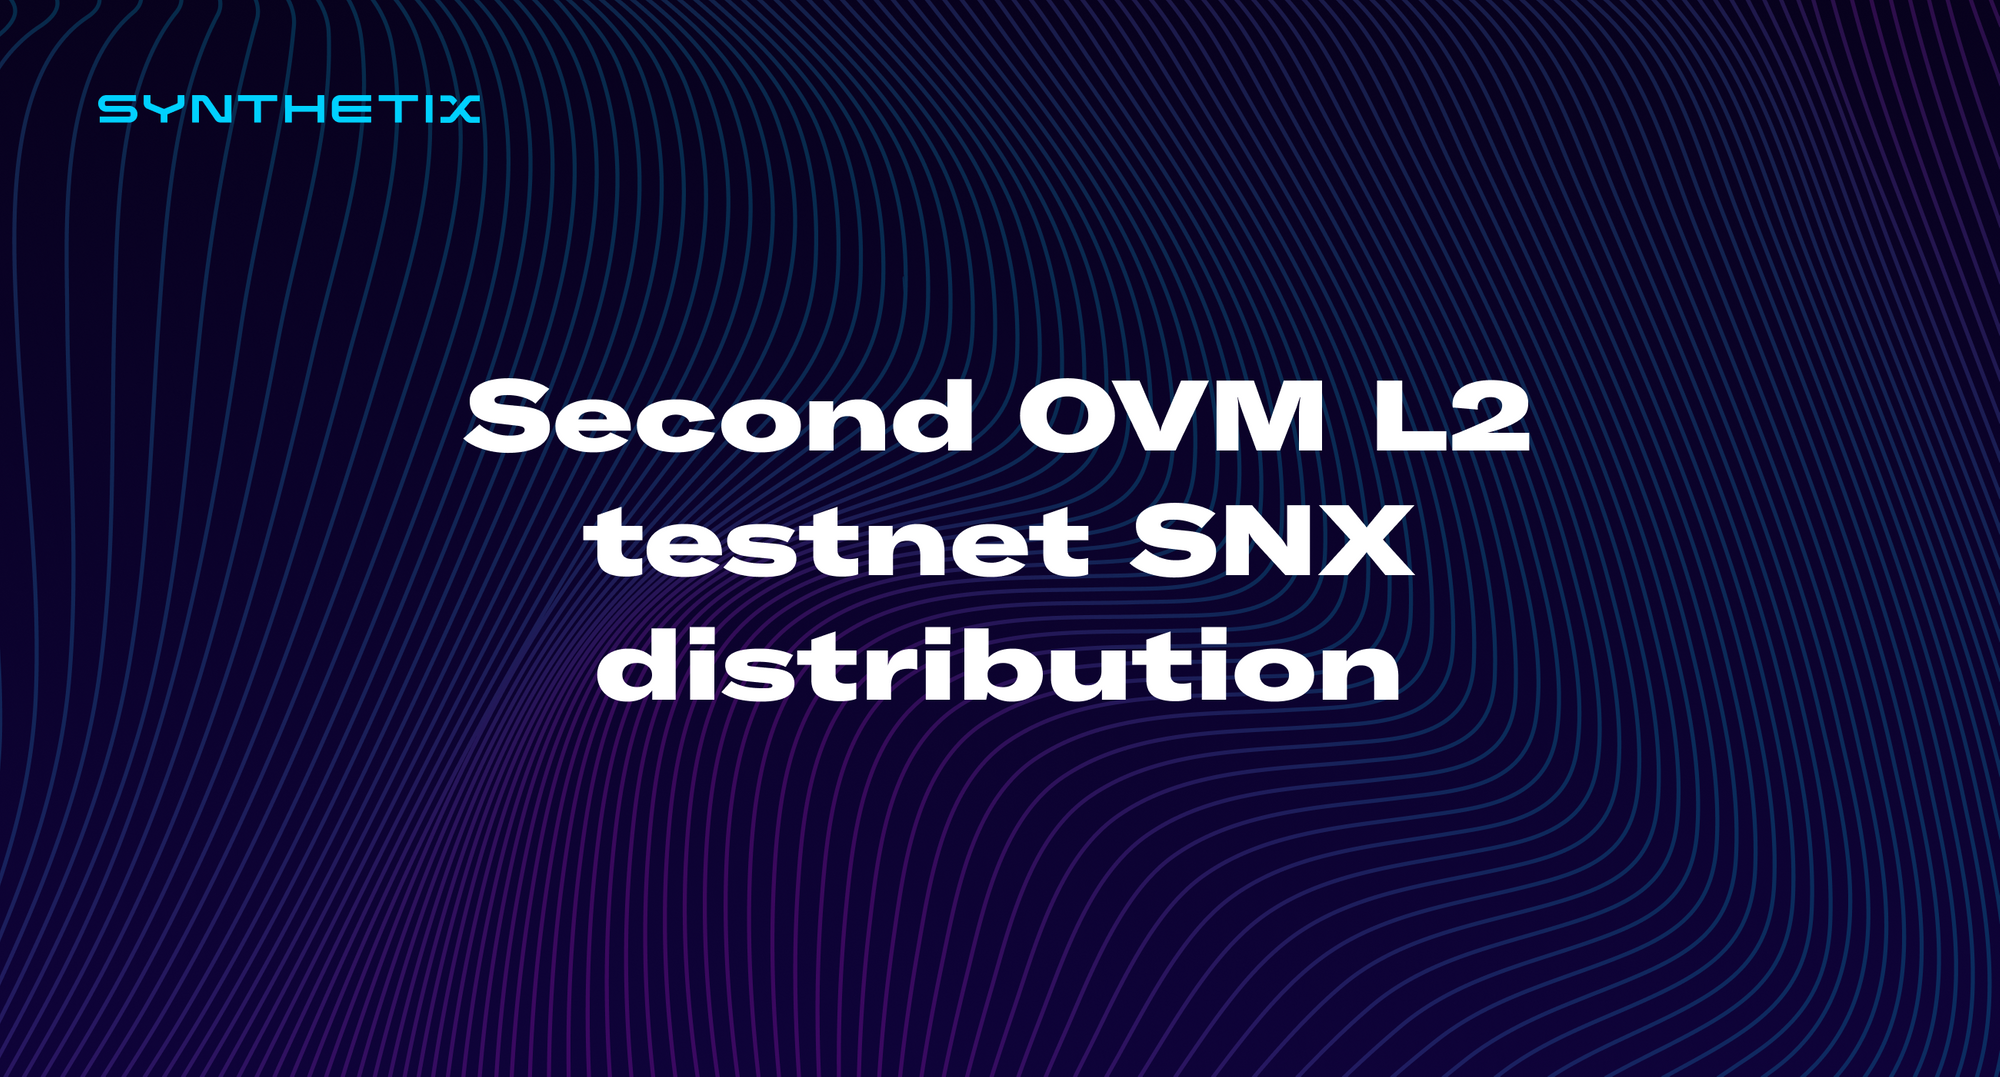 Second OVM L2 testnet SNX distribution